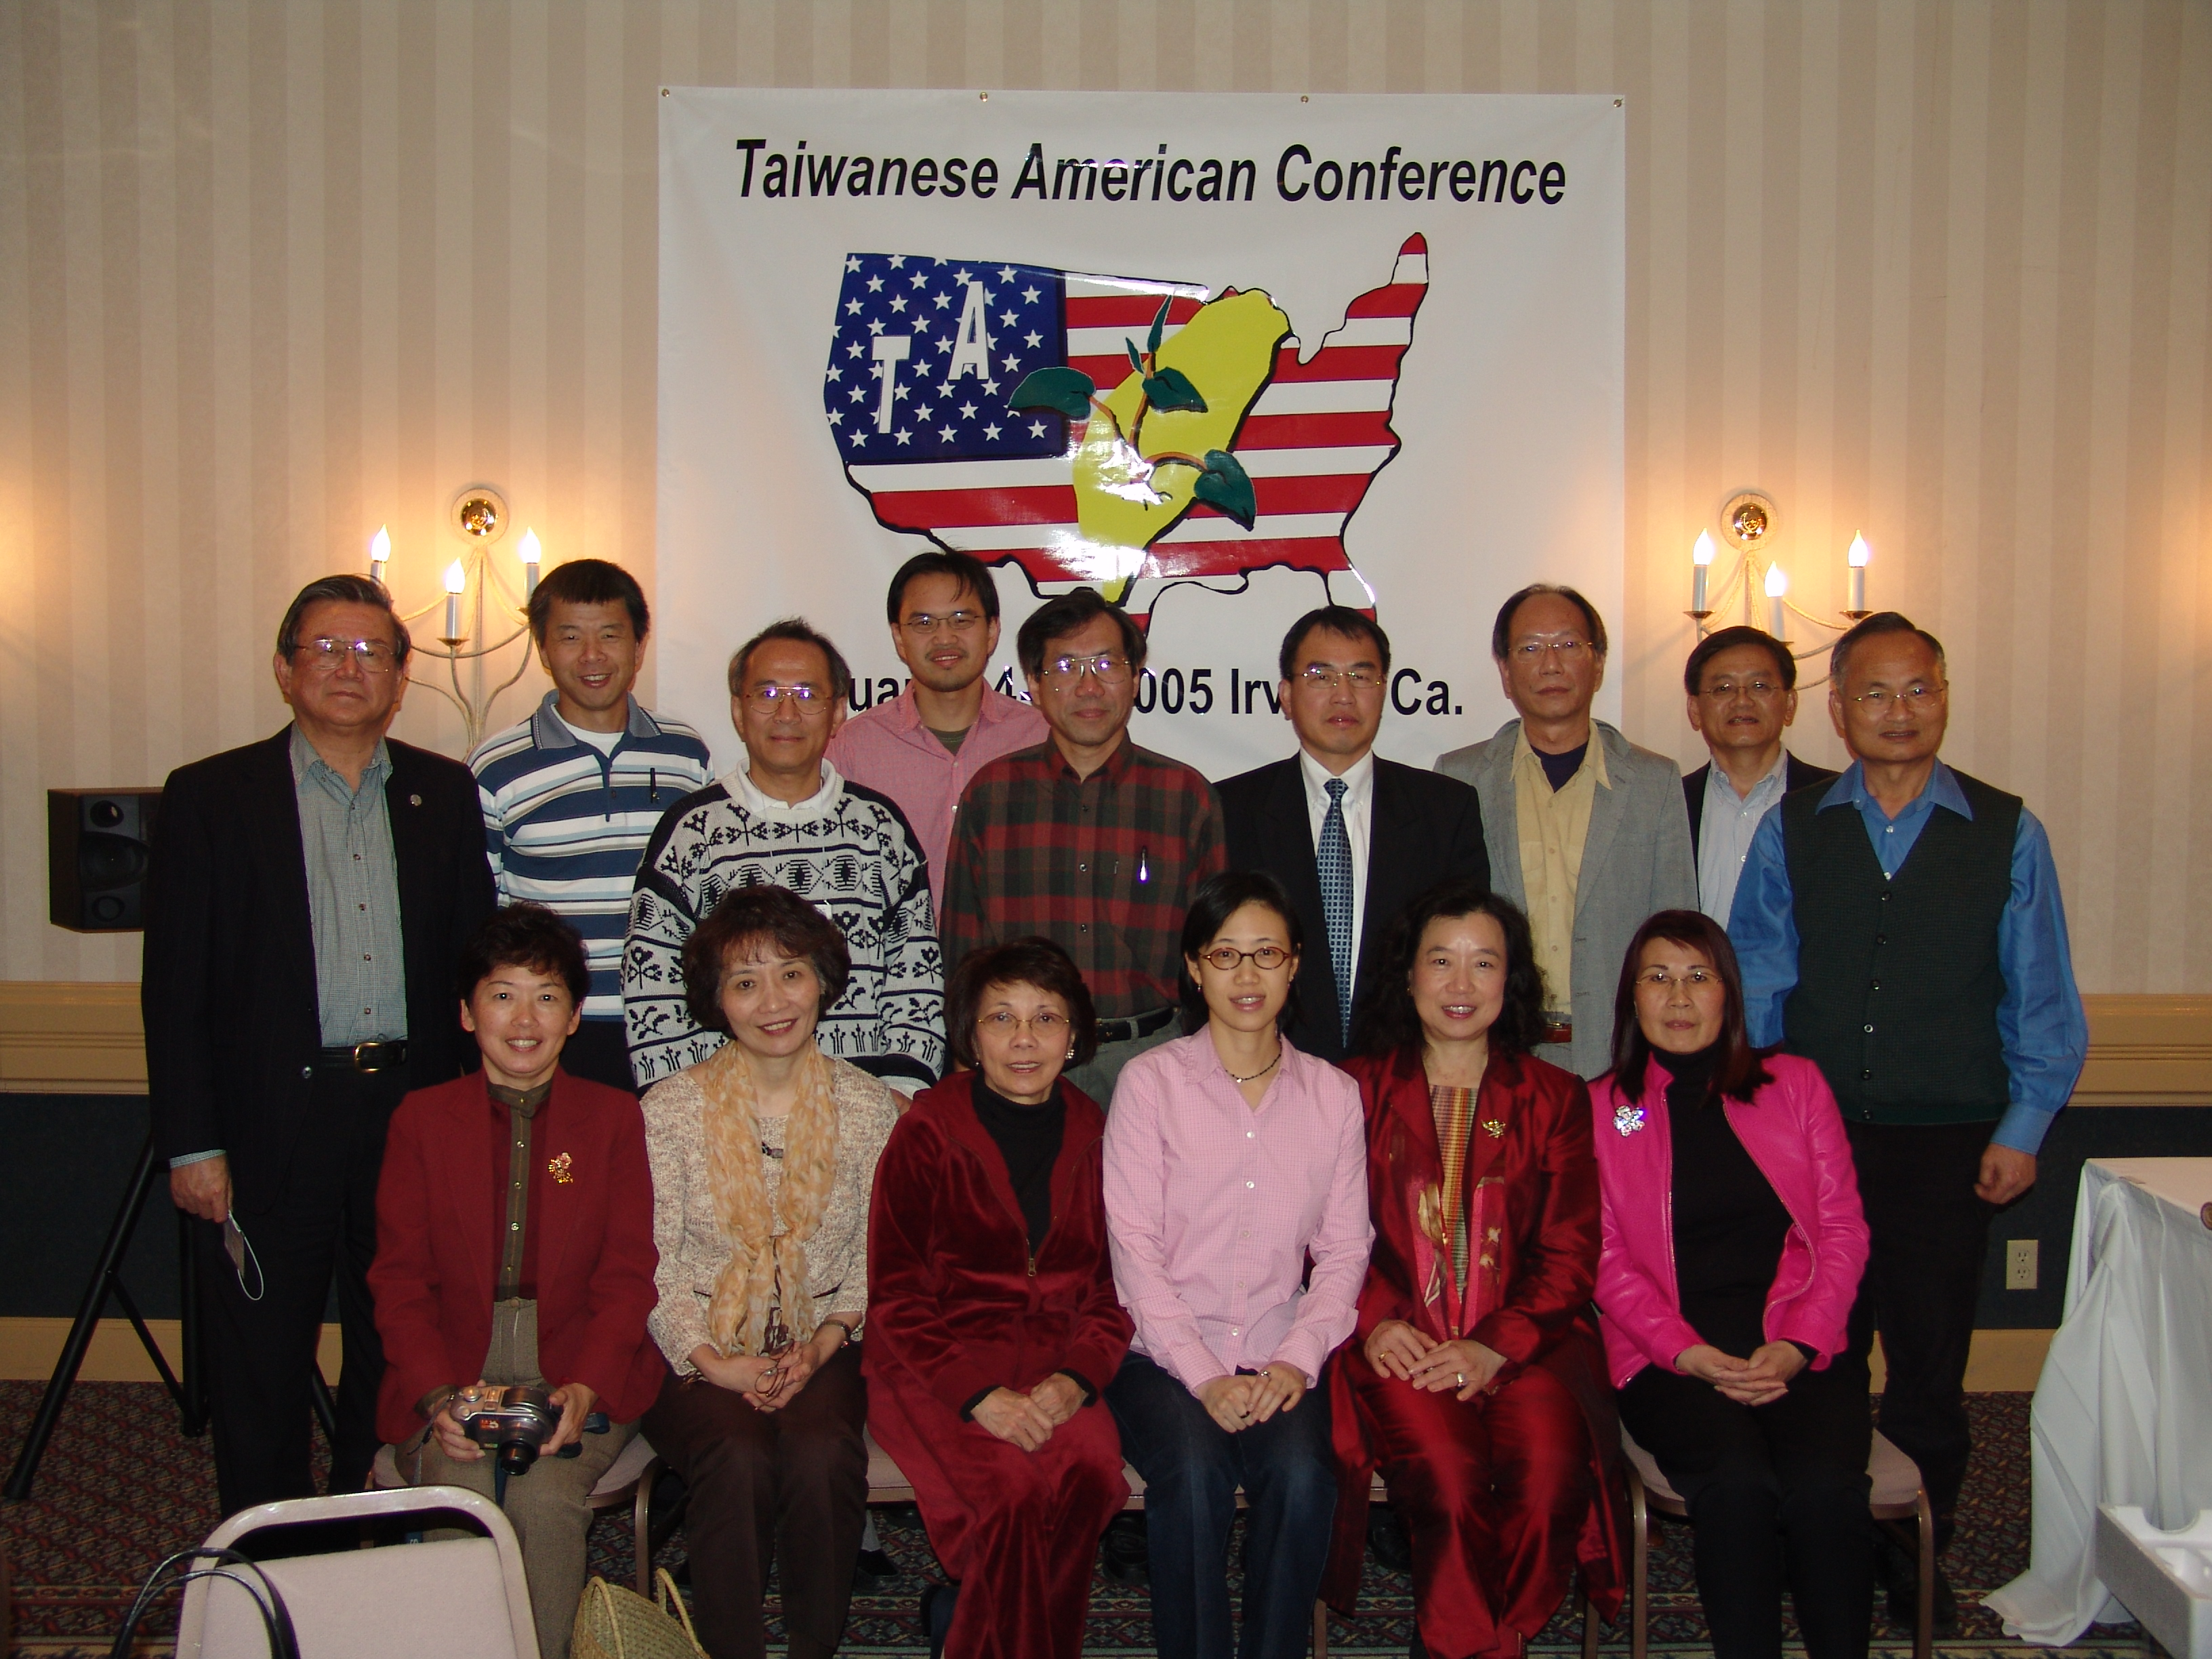 1. Group photo of the persons from 7 Taiwanese American Centers in the U. S..(Irvine, CA, Jan. 15, 2005)